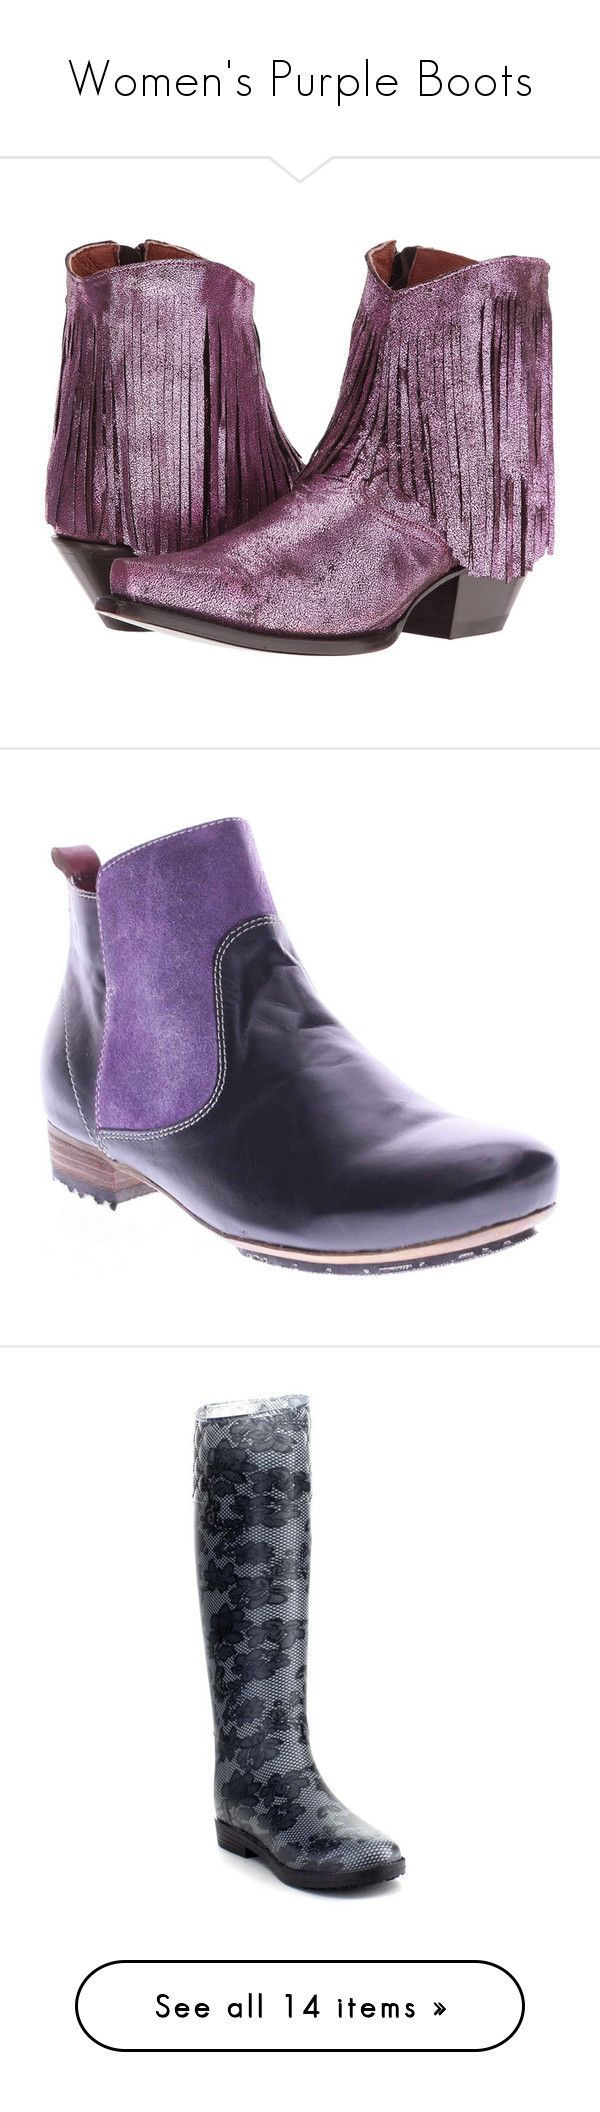 """Women's Purple Boots"" by eternalfeatherfilm on Polyvore featuring shoes, boots, mid-calf boots, mid calf boots, western cowgirl boots, fringe cowgirl boots, cowboy boots, western boots shoes, shearling-lined boots and purple leather boots"